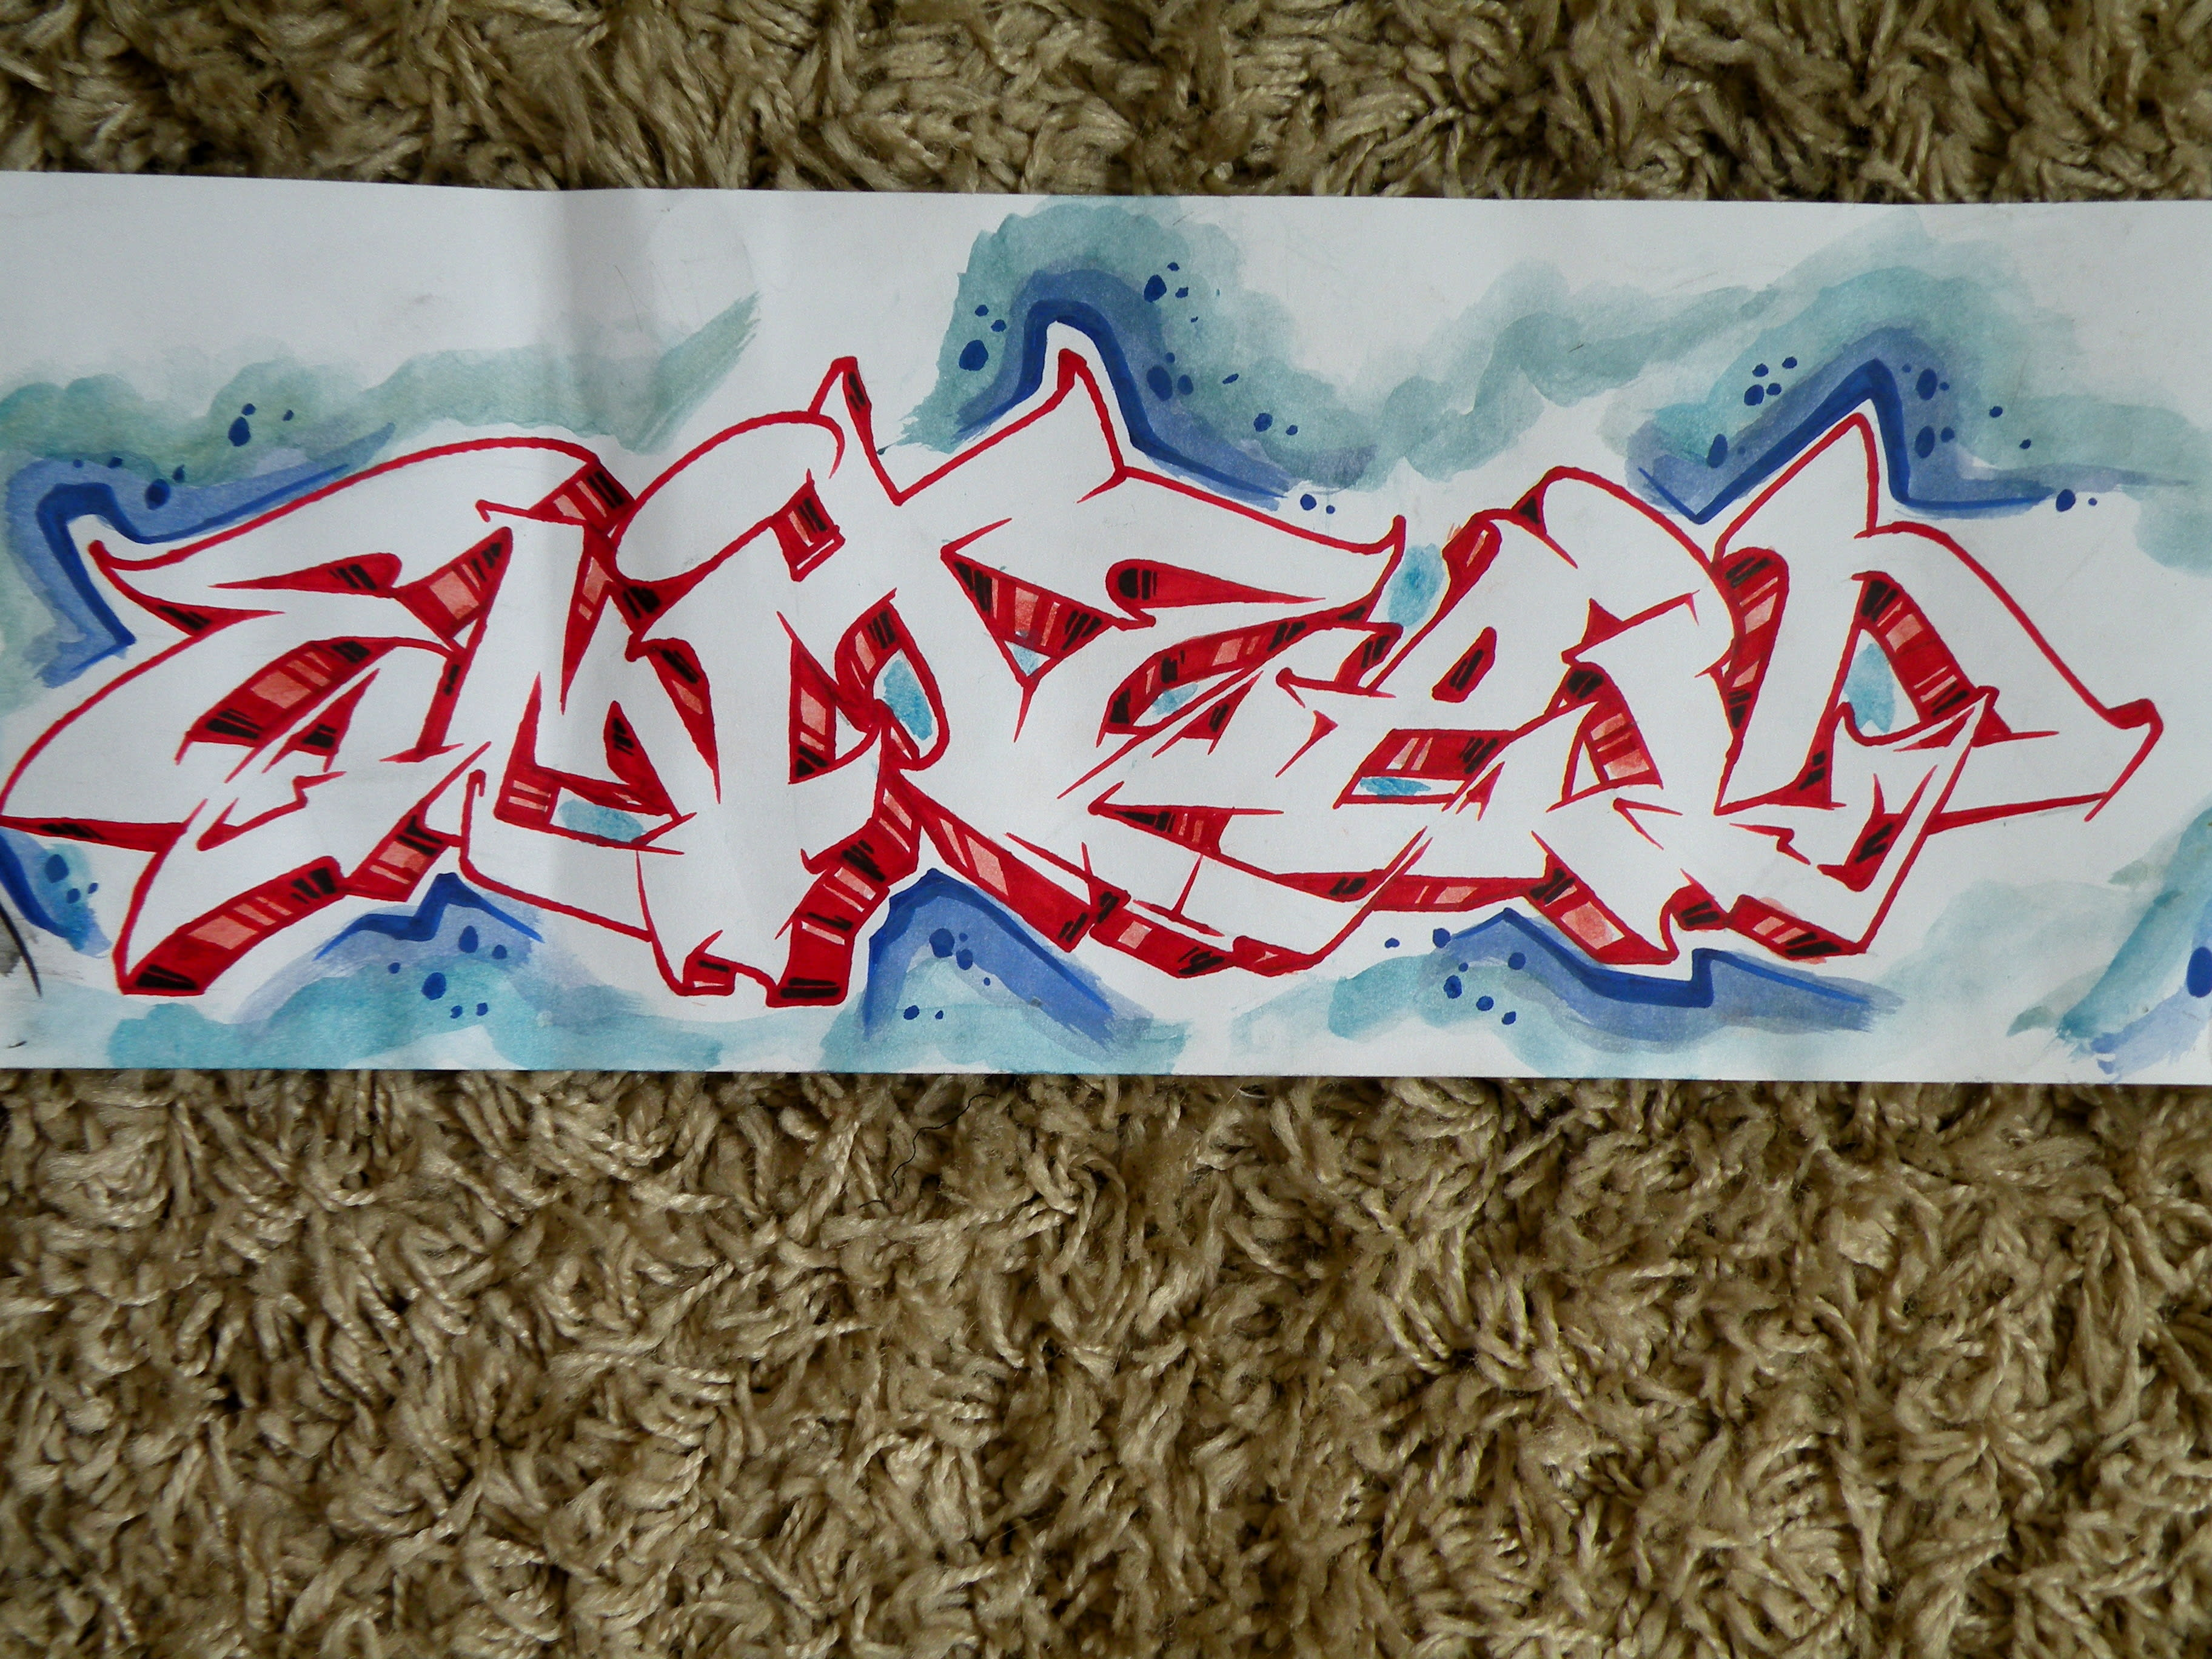 I will draw a graffiti sketch of your name